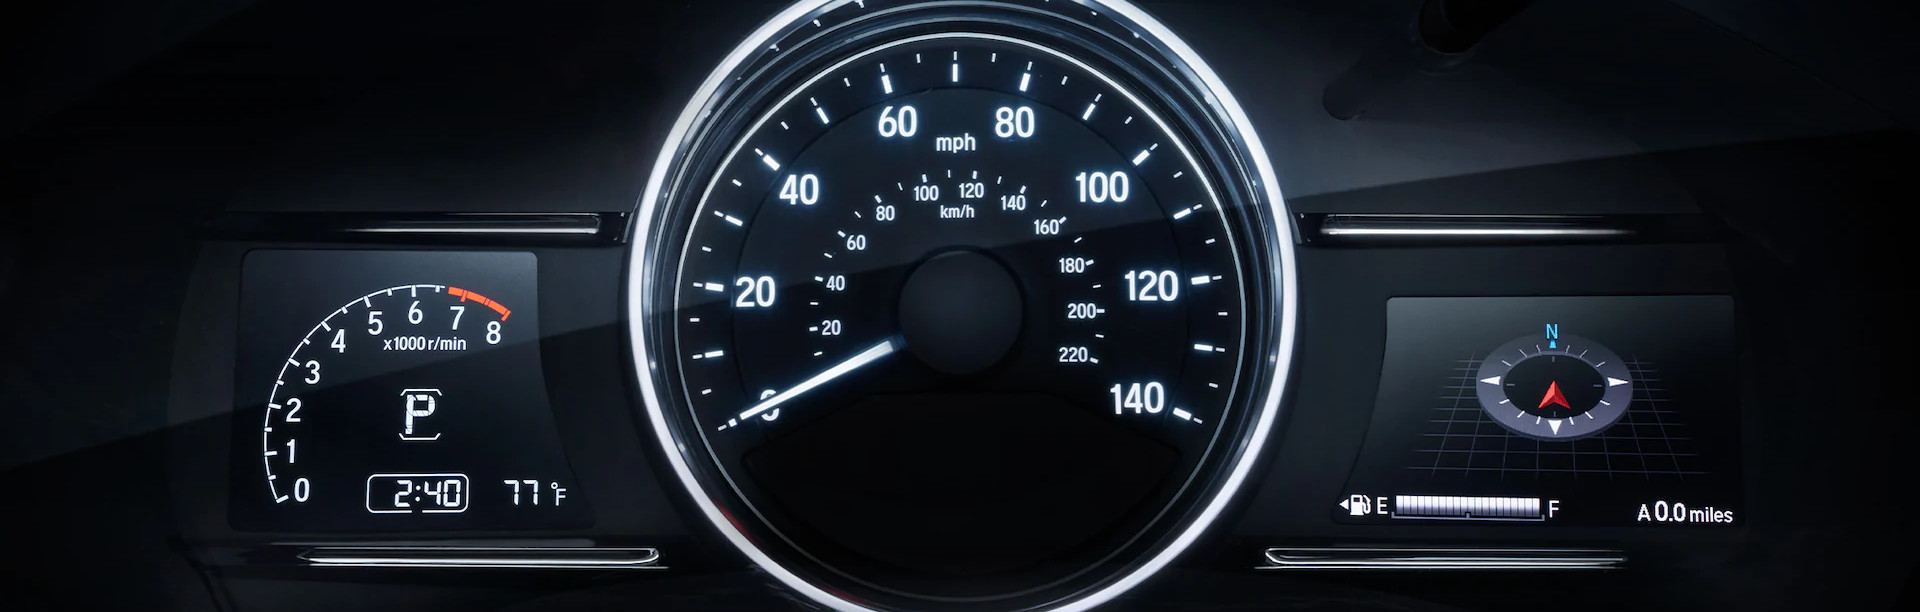 Instrument Cluster of the 2020 Honda HR-V